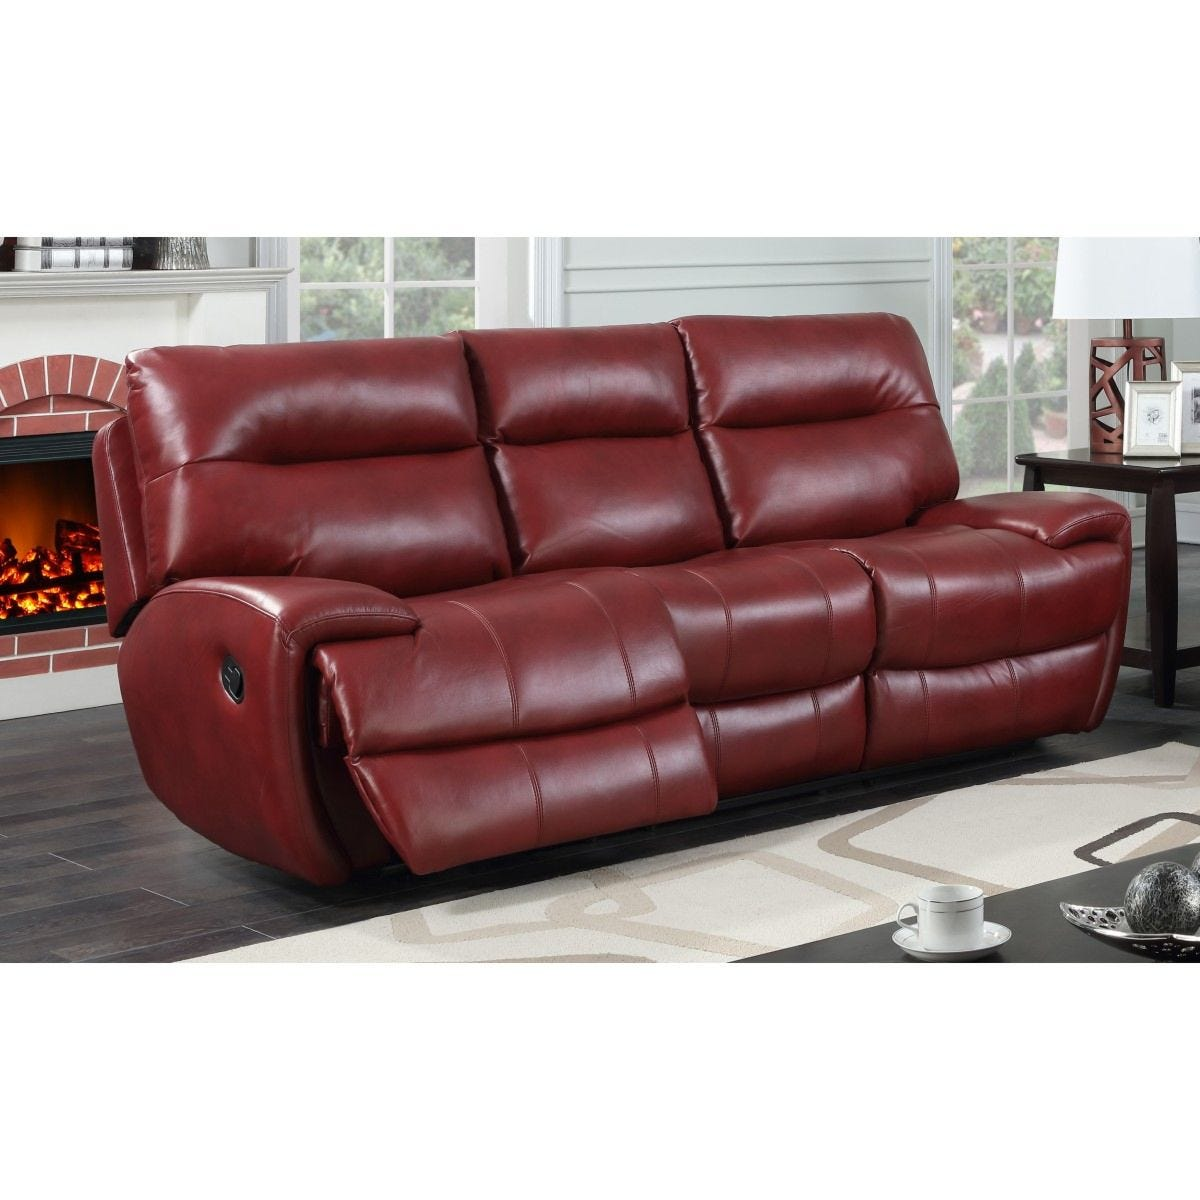 Bampton Recliner 3 Seater Faux Leather Sofa Red